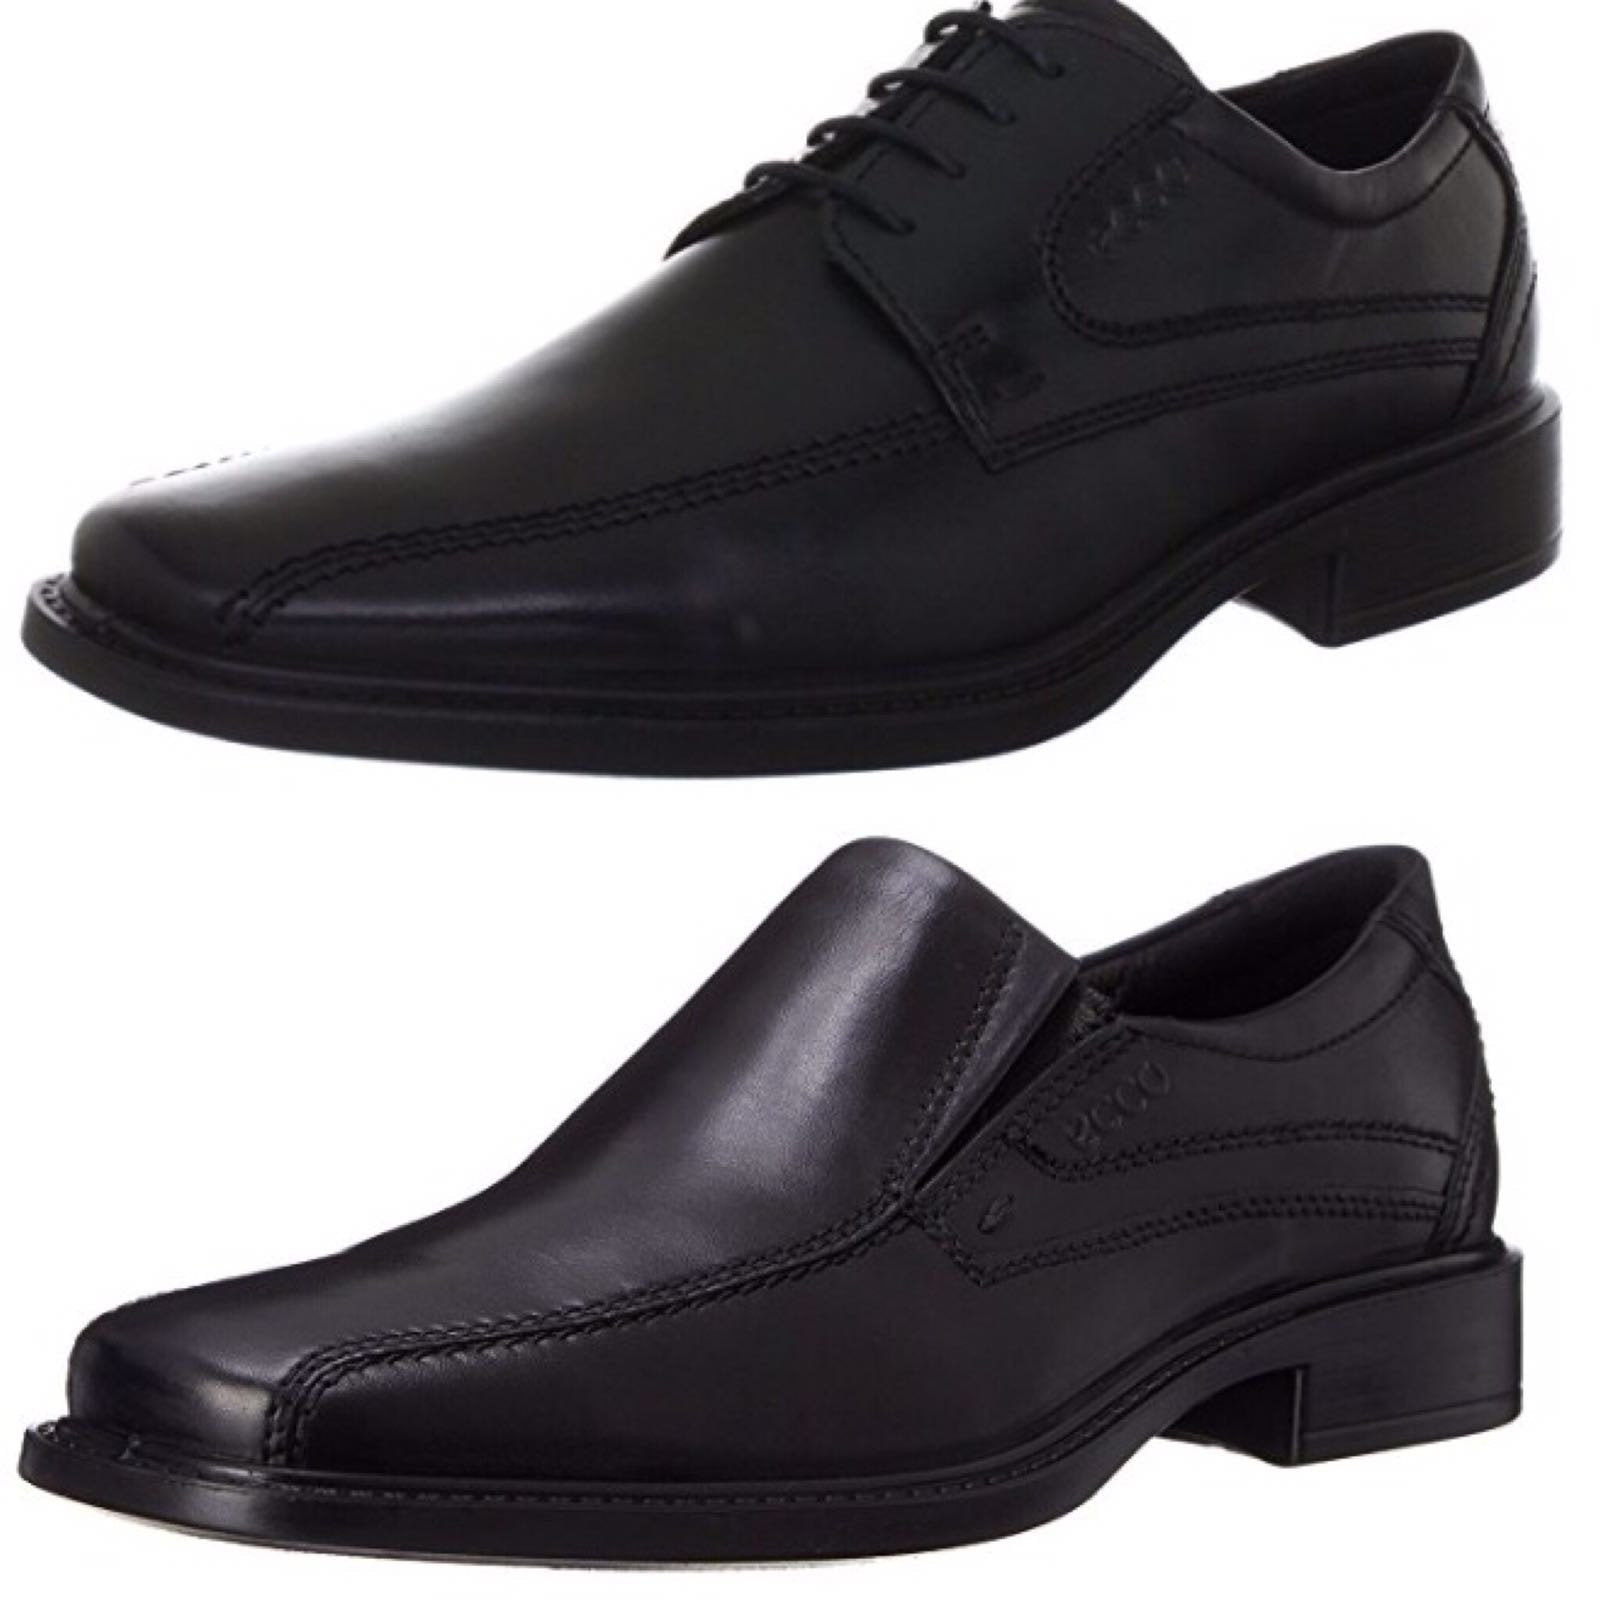 ECCO loafer or oxfords on sale